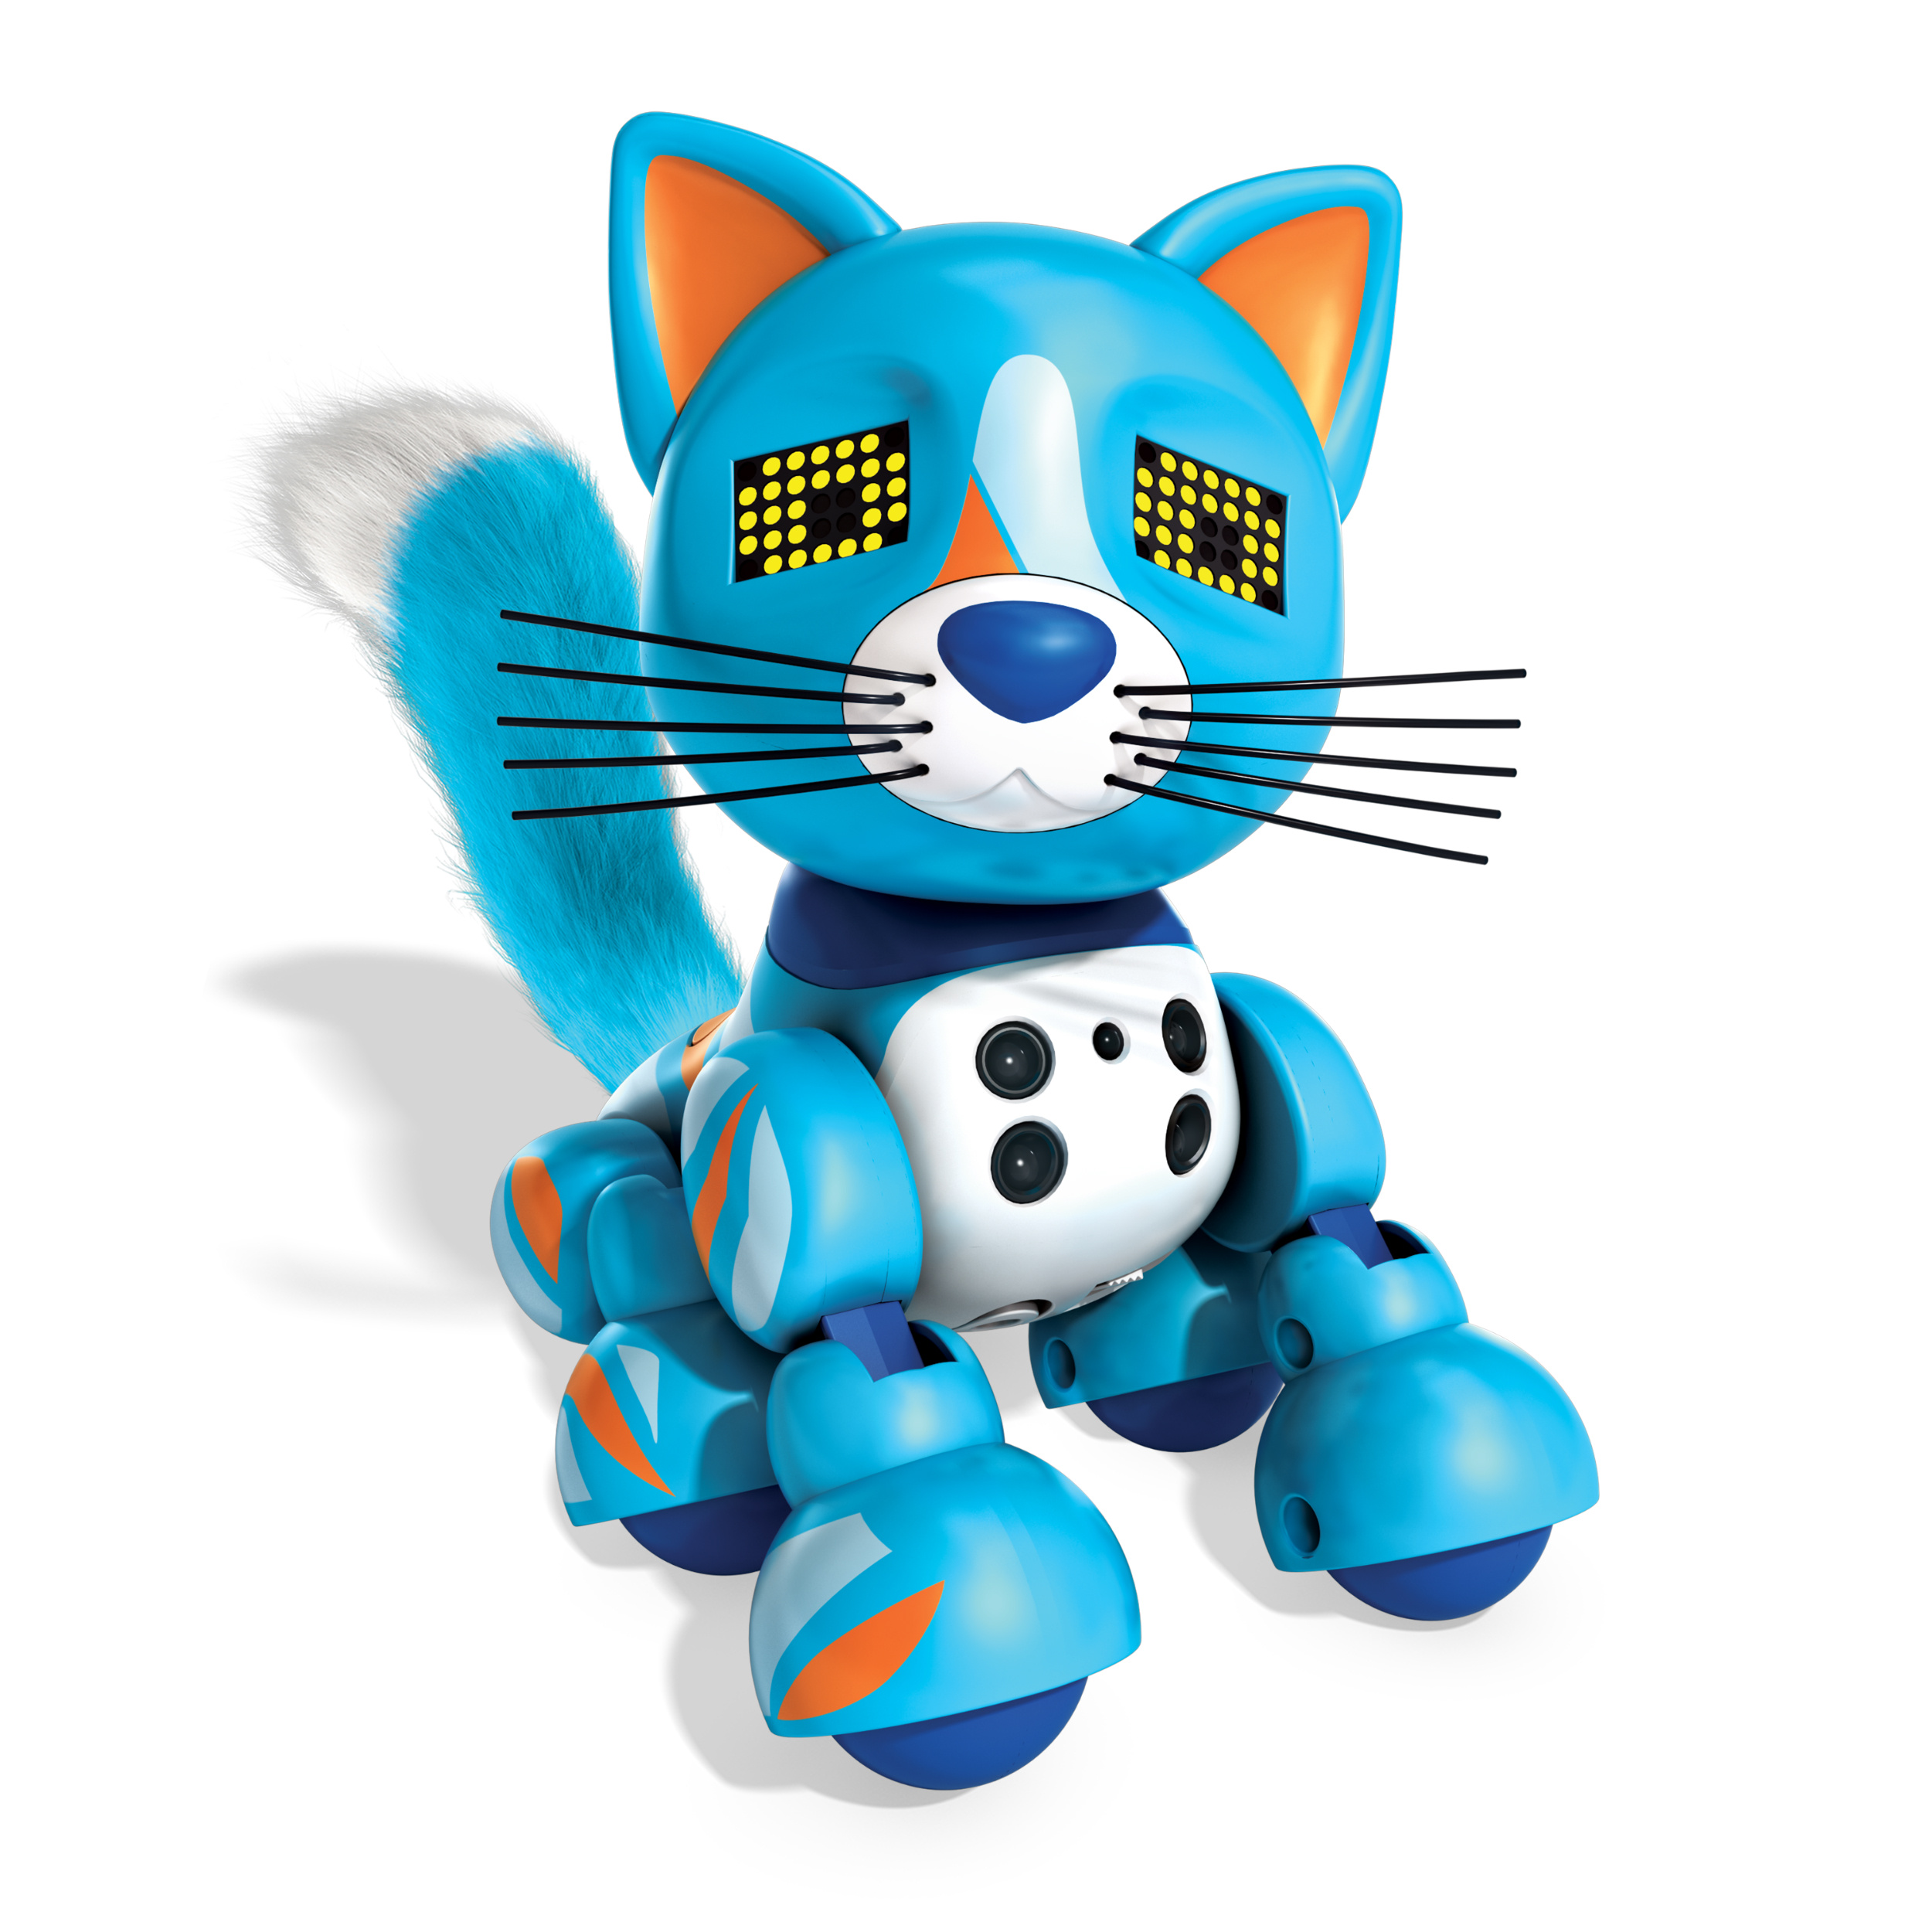 Zoomer Meowzies, Patches, Interactive Kitten with Lights, Sounds and Sensors, by Spin Master